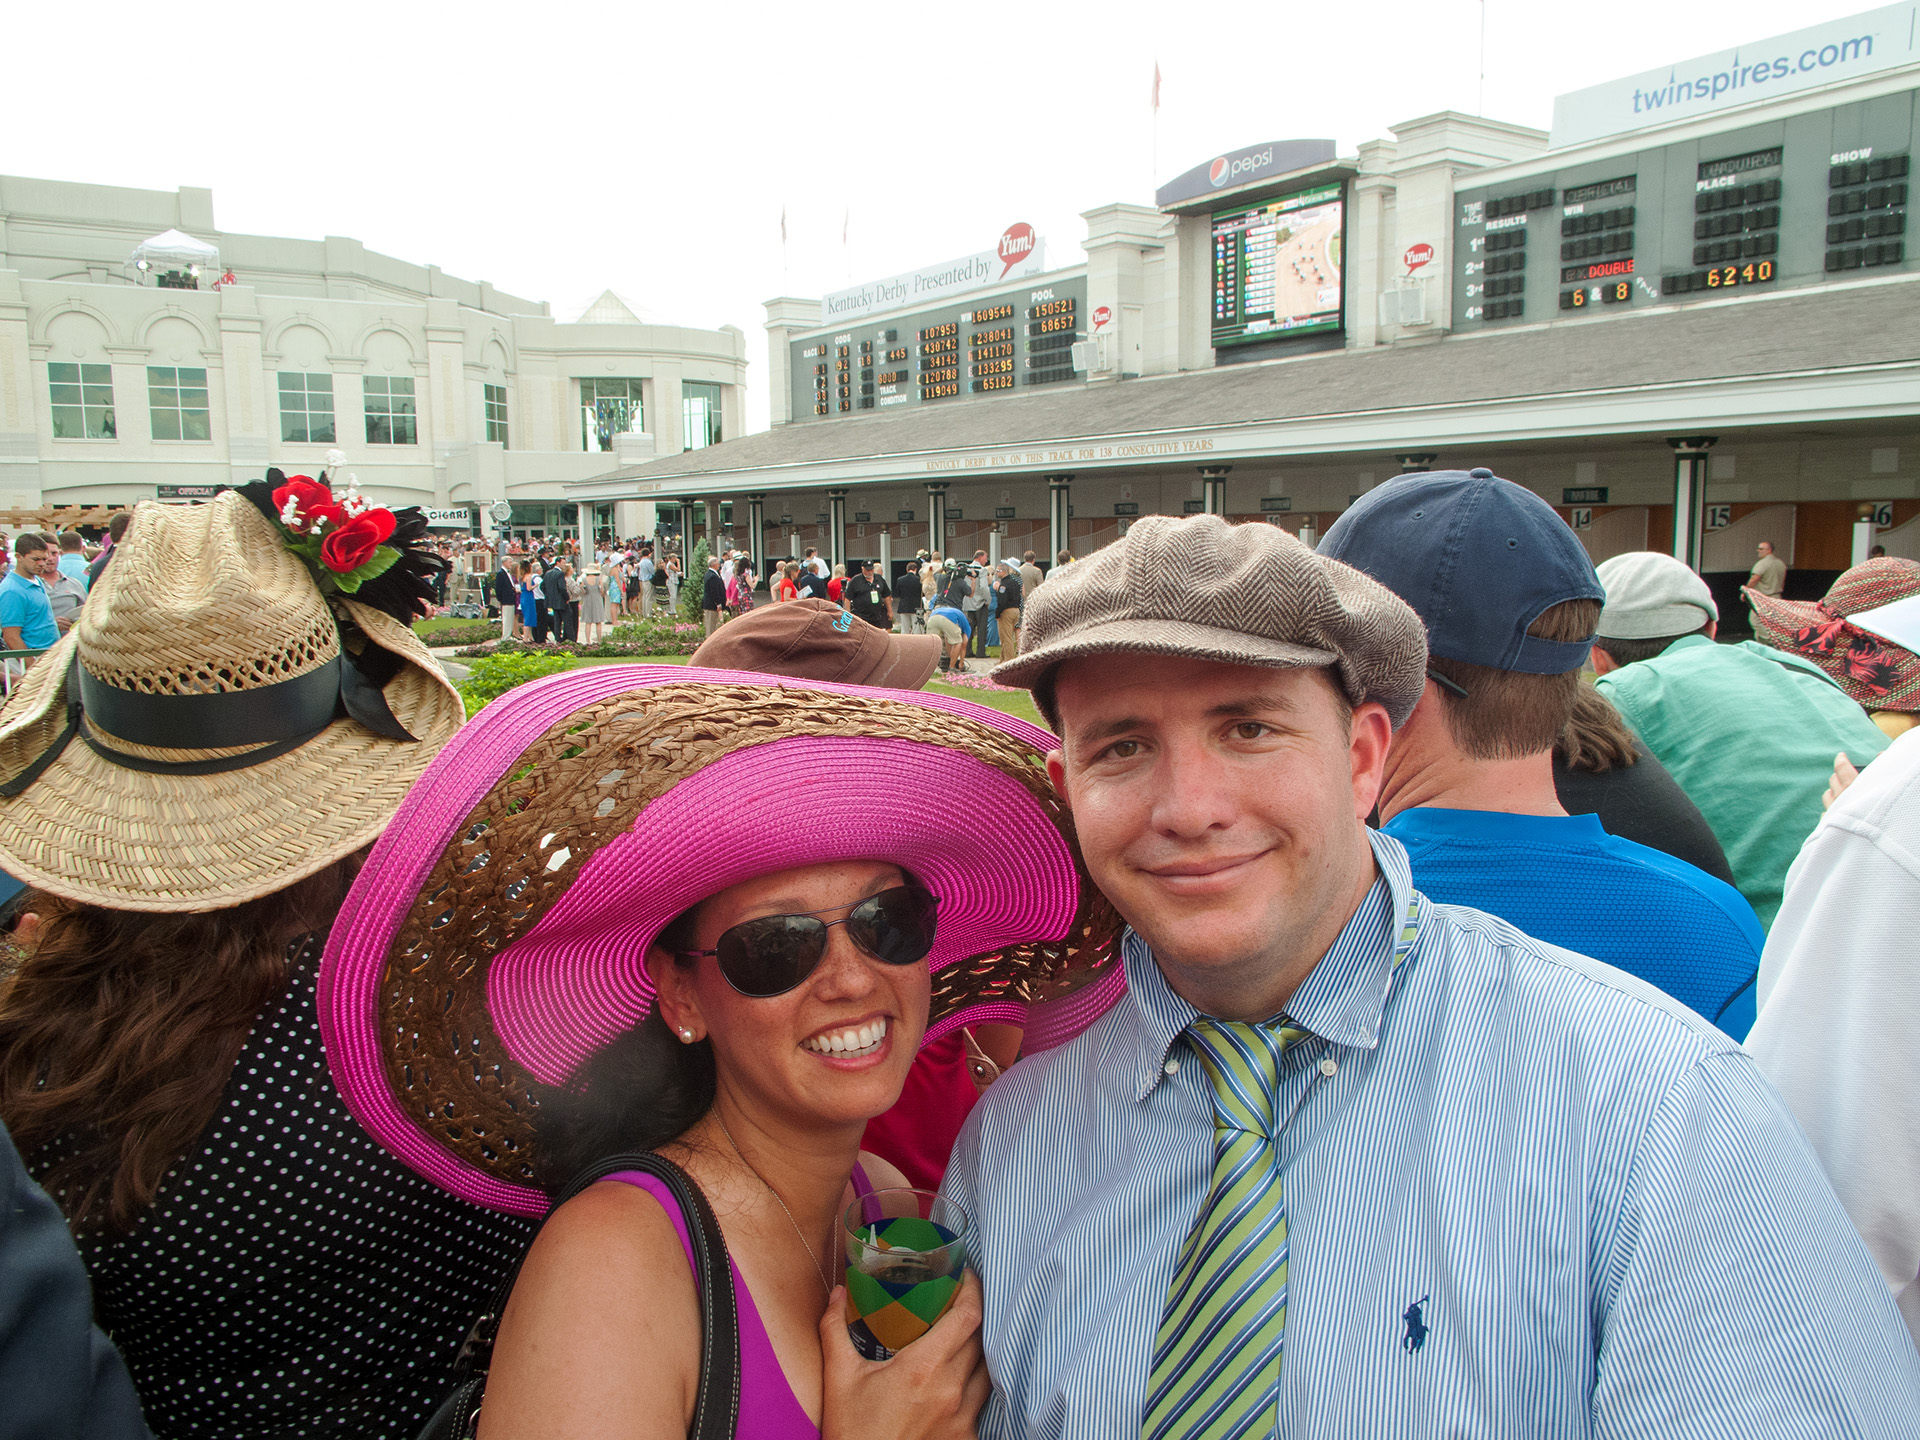 Heather and Matt at the paddock area at the Kentucky Derby.